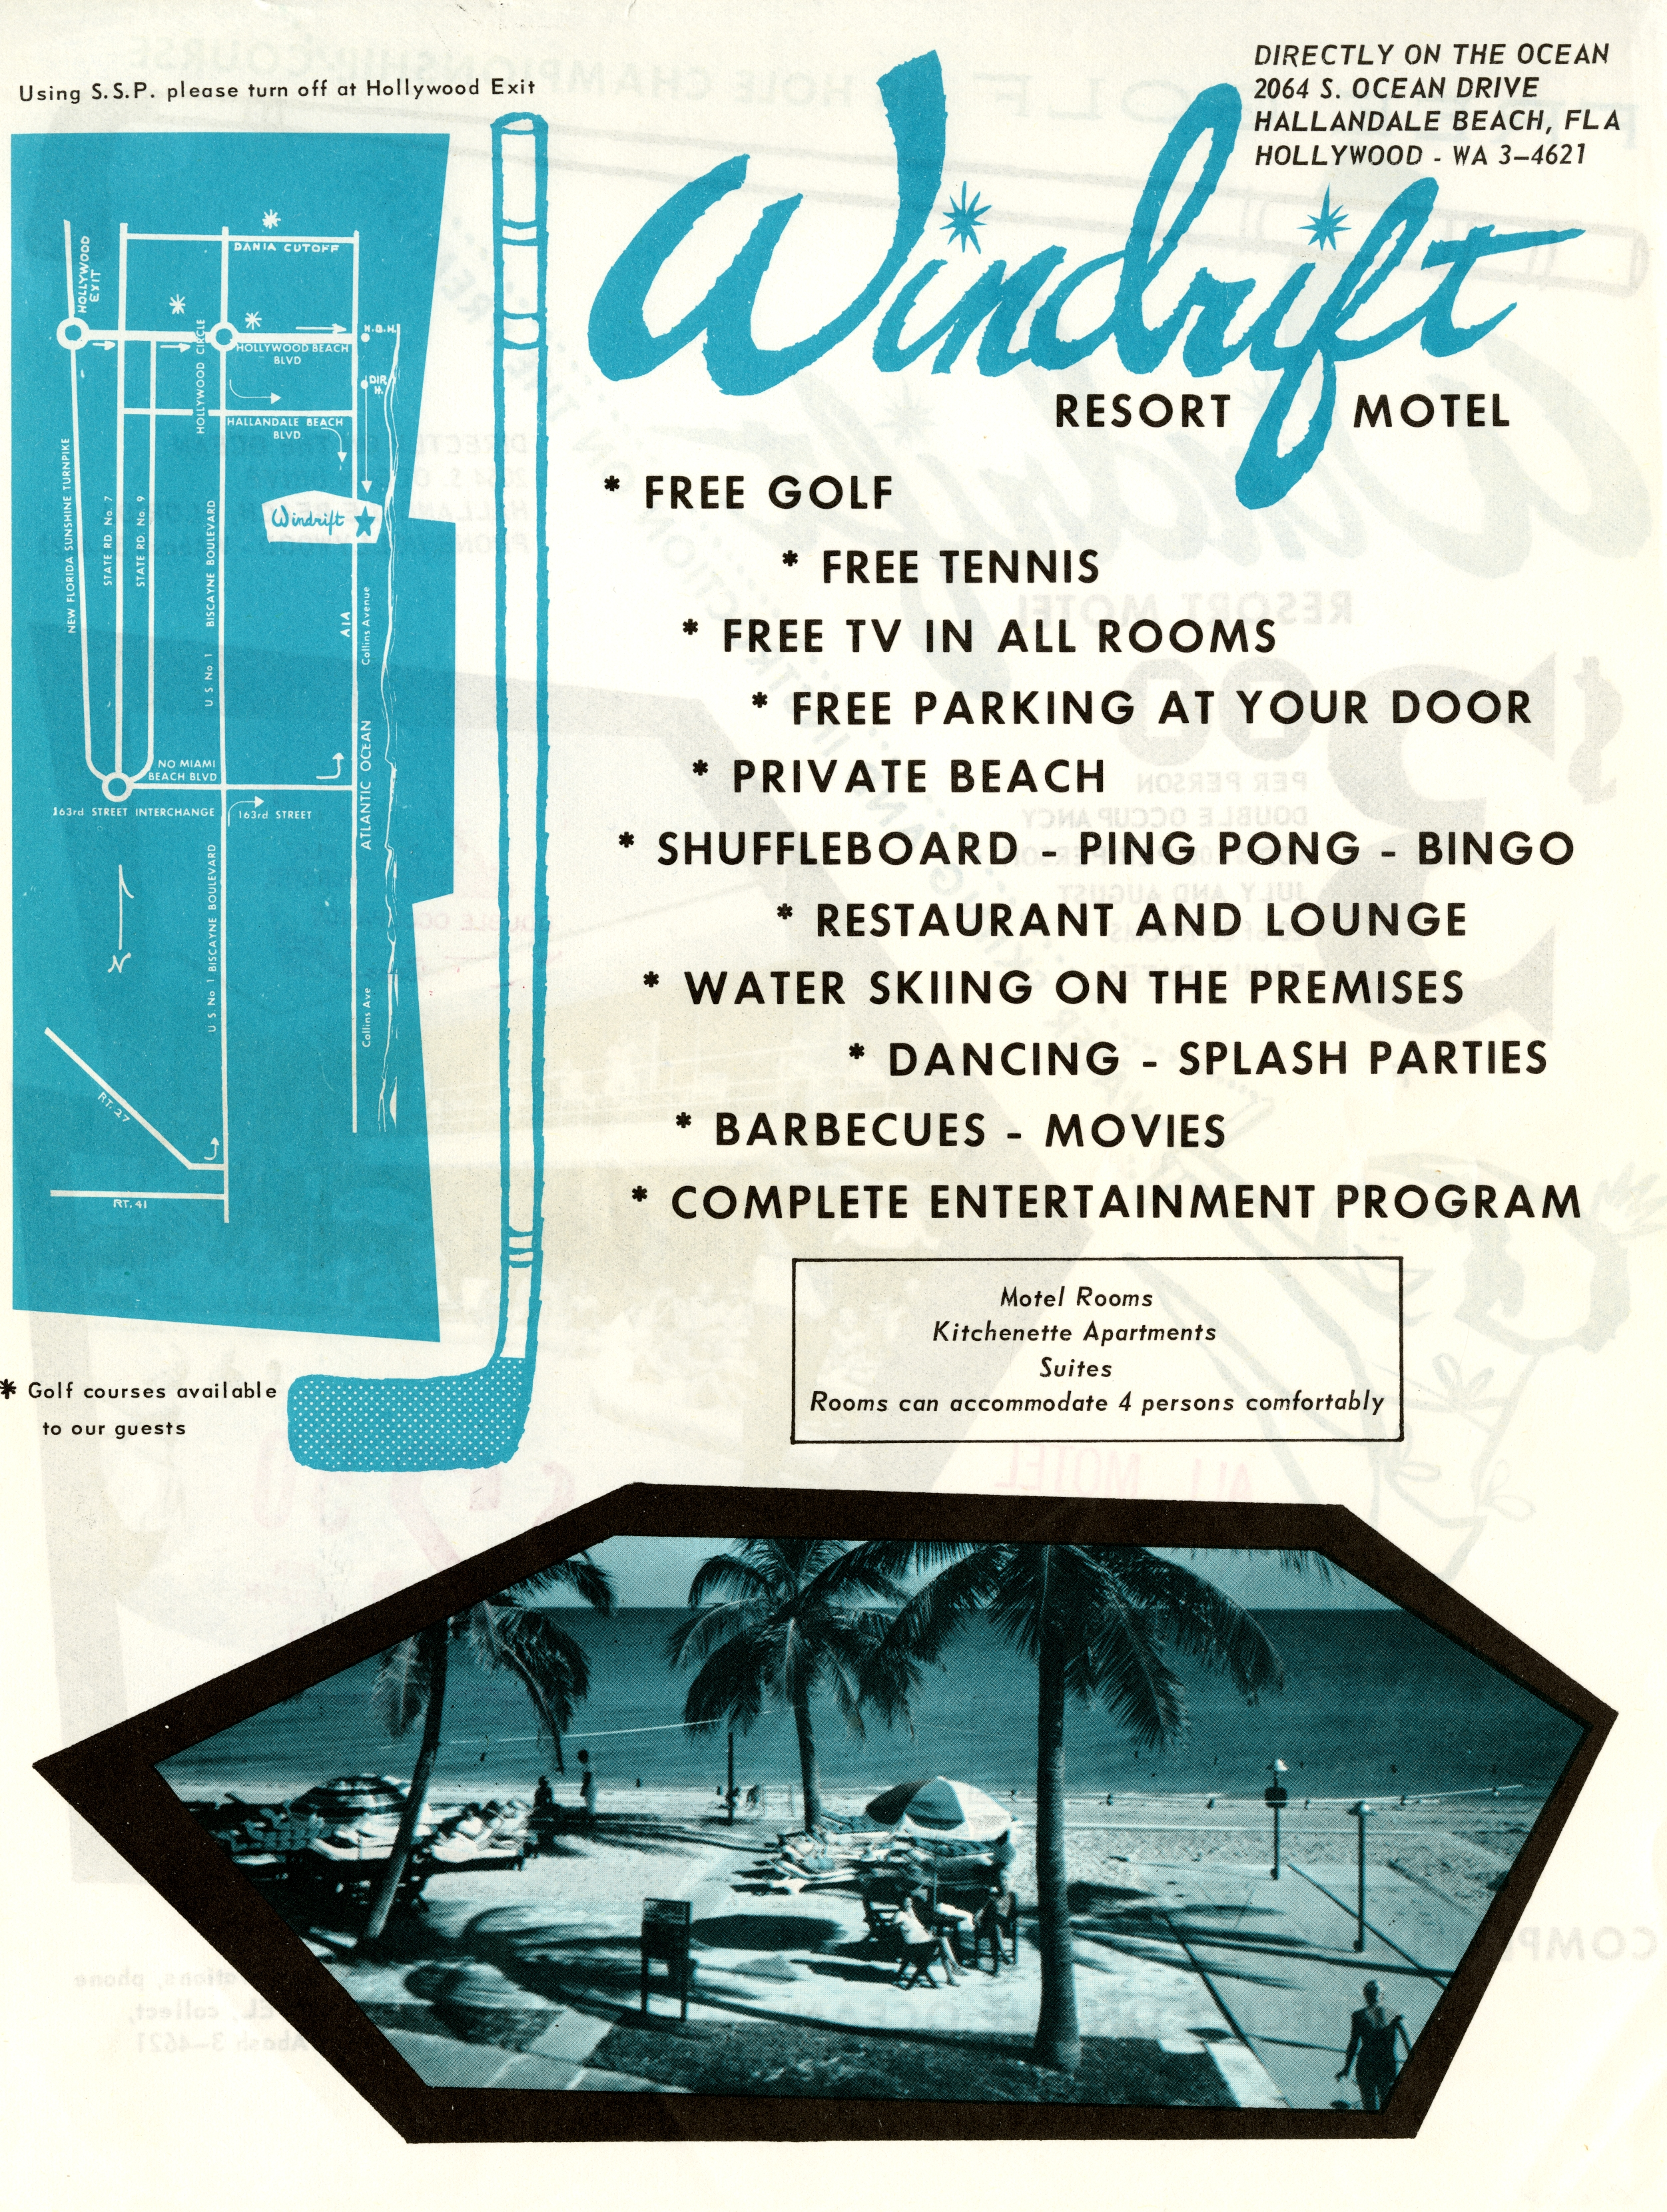 Windrift Resort Motel, Miami Beach, Florida.